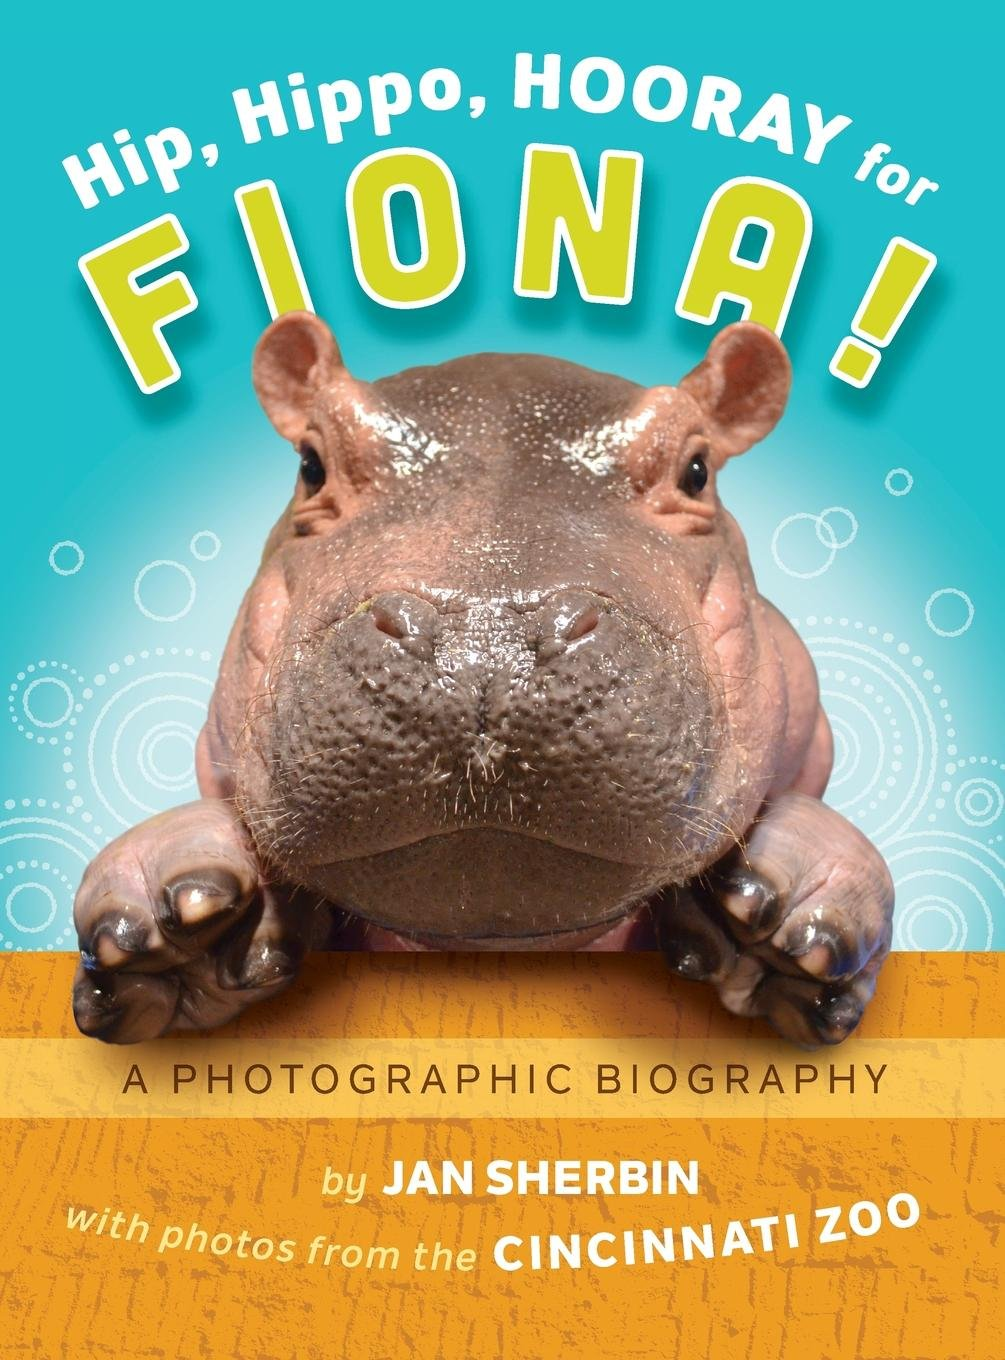 Hip, Hippo, Hooray for Fiona!: A Photographic Biography by Insights Productions (Image #1)